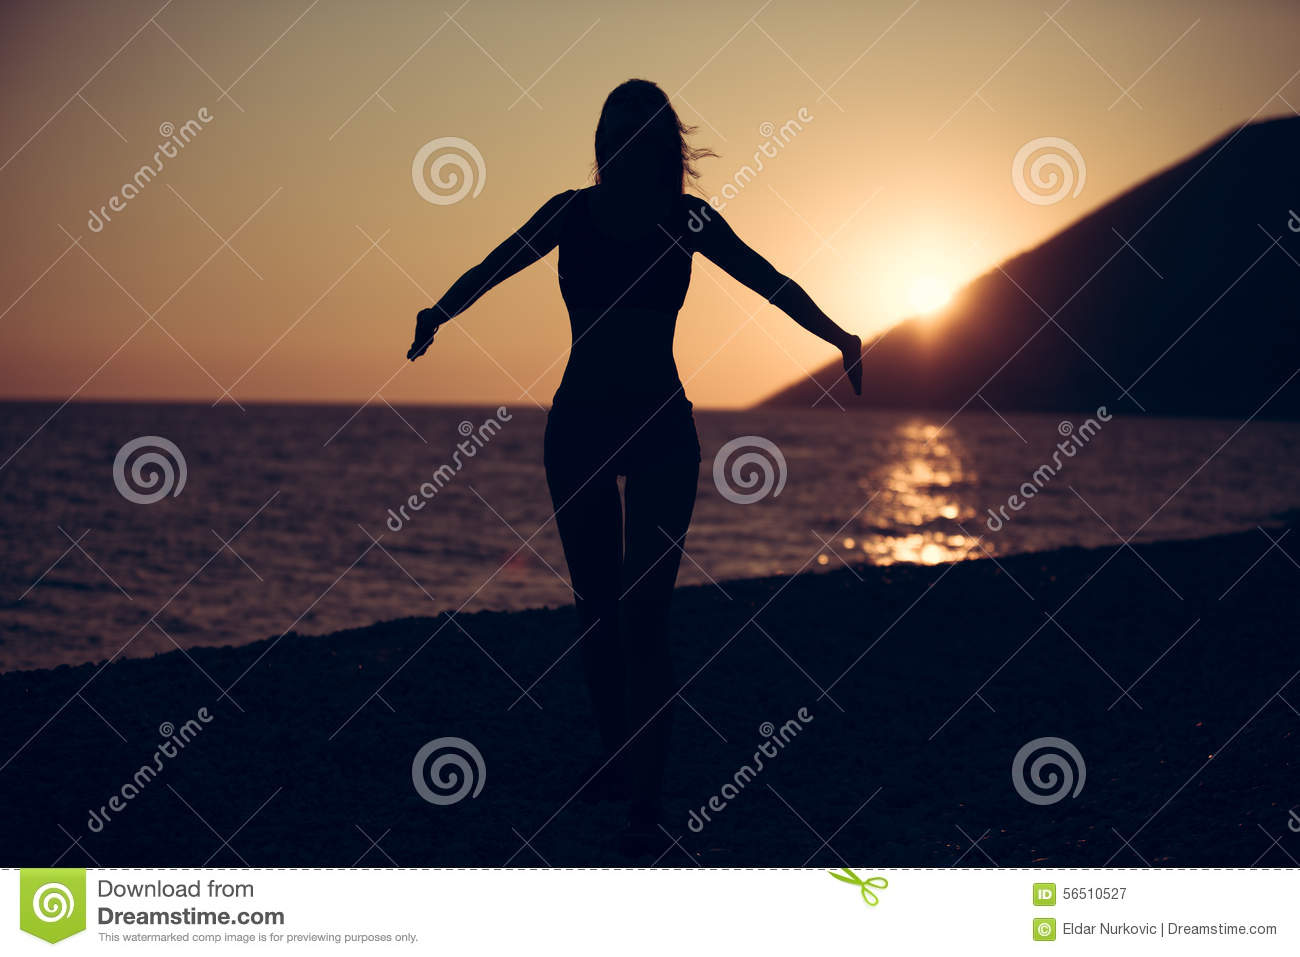 Carefree woman dancing in the sunset on the beach.Vacation vitality healthy living concept.Free woman enjoying freedom feeling hap